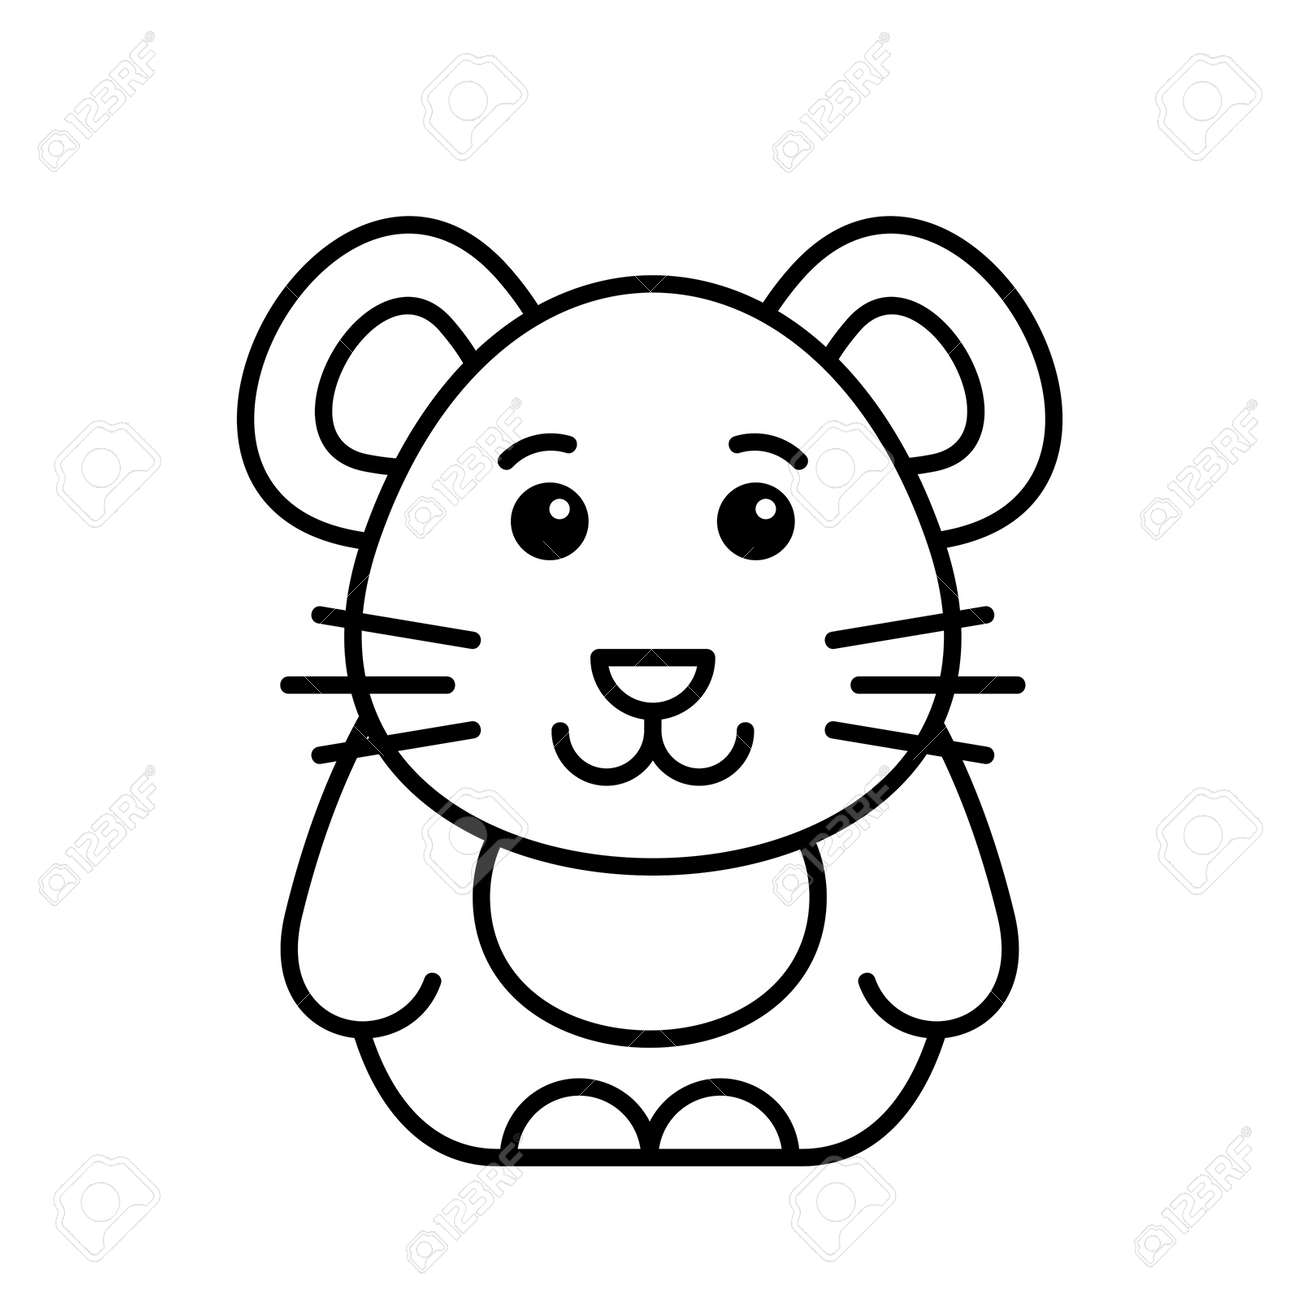 Mouse icon. Icon design. Template elements - 171231664